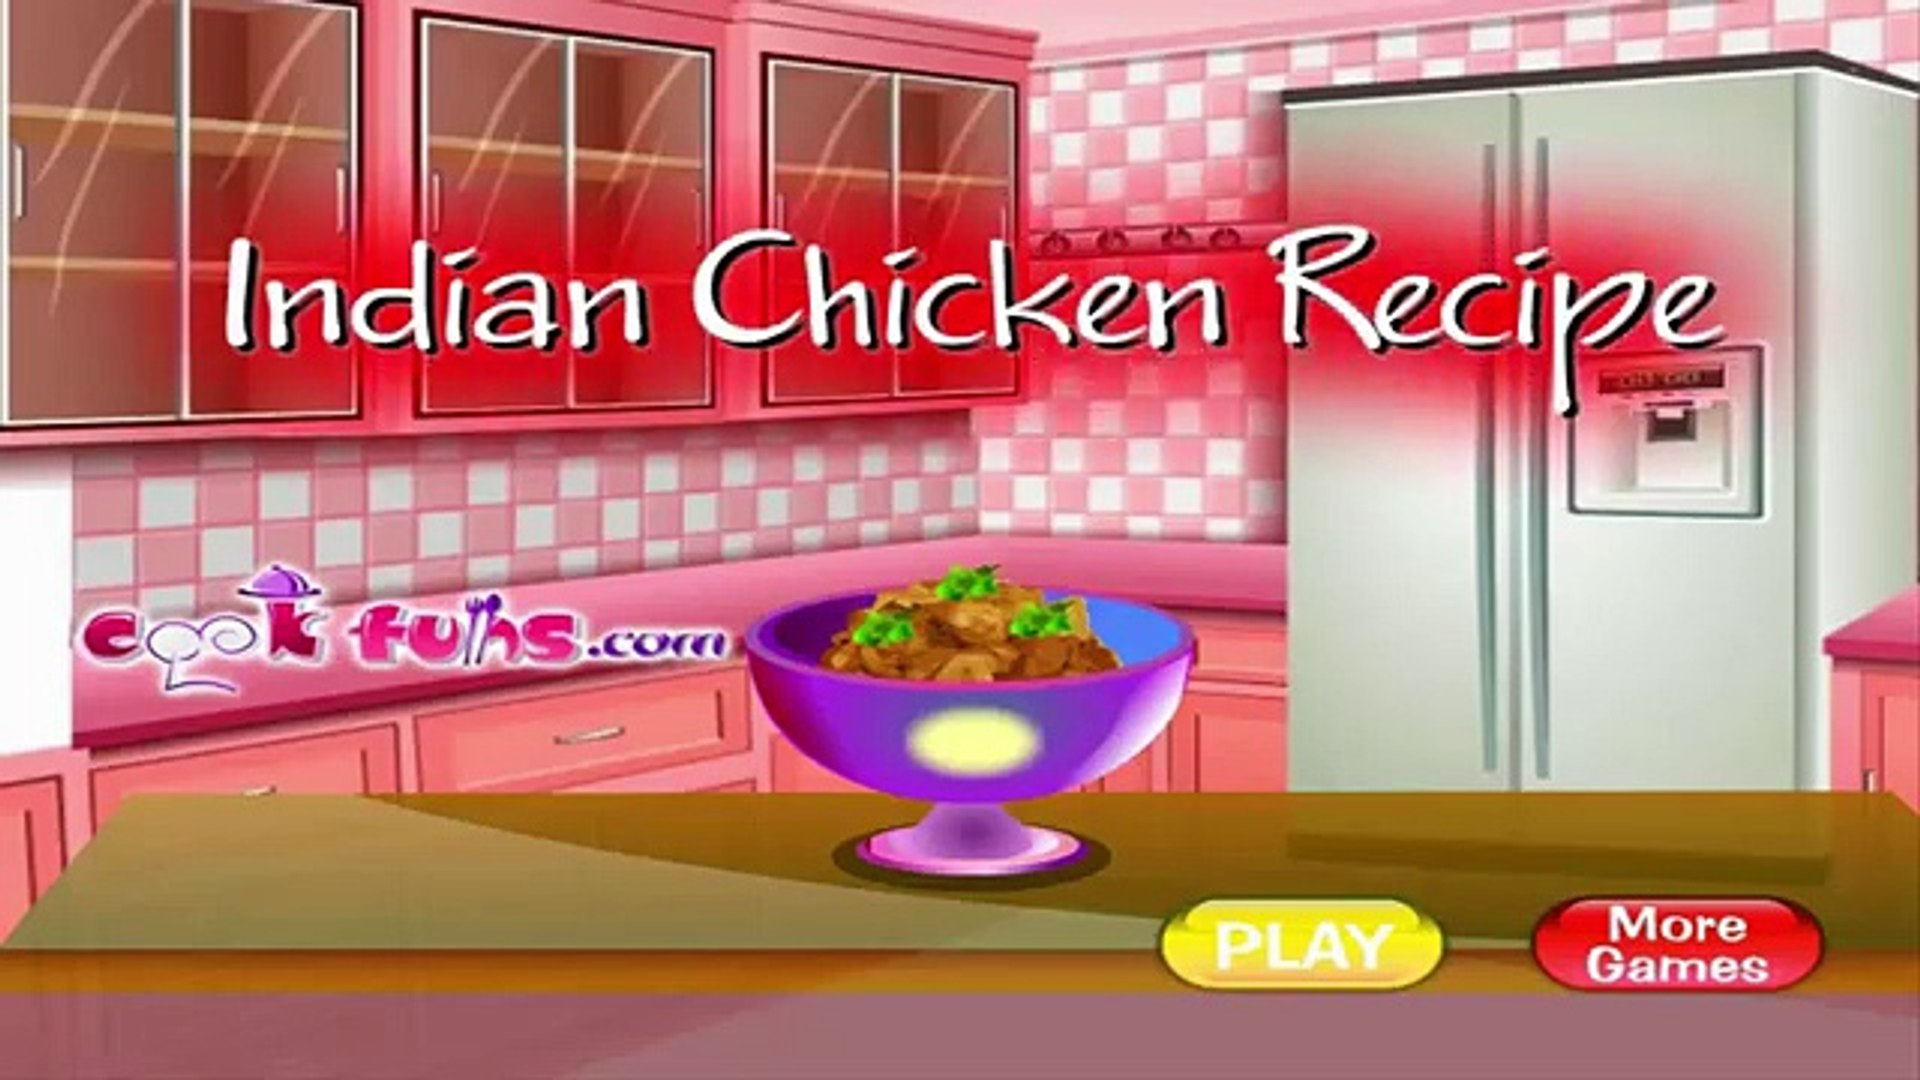 Cooking games for girls online - Free online games for girls - Indian Chicken Recipe